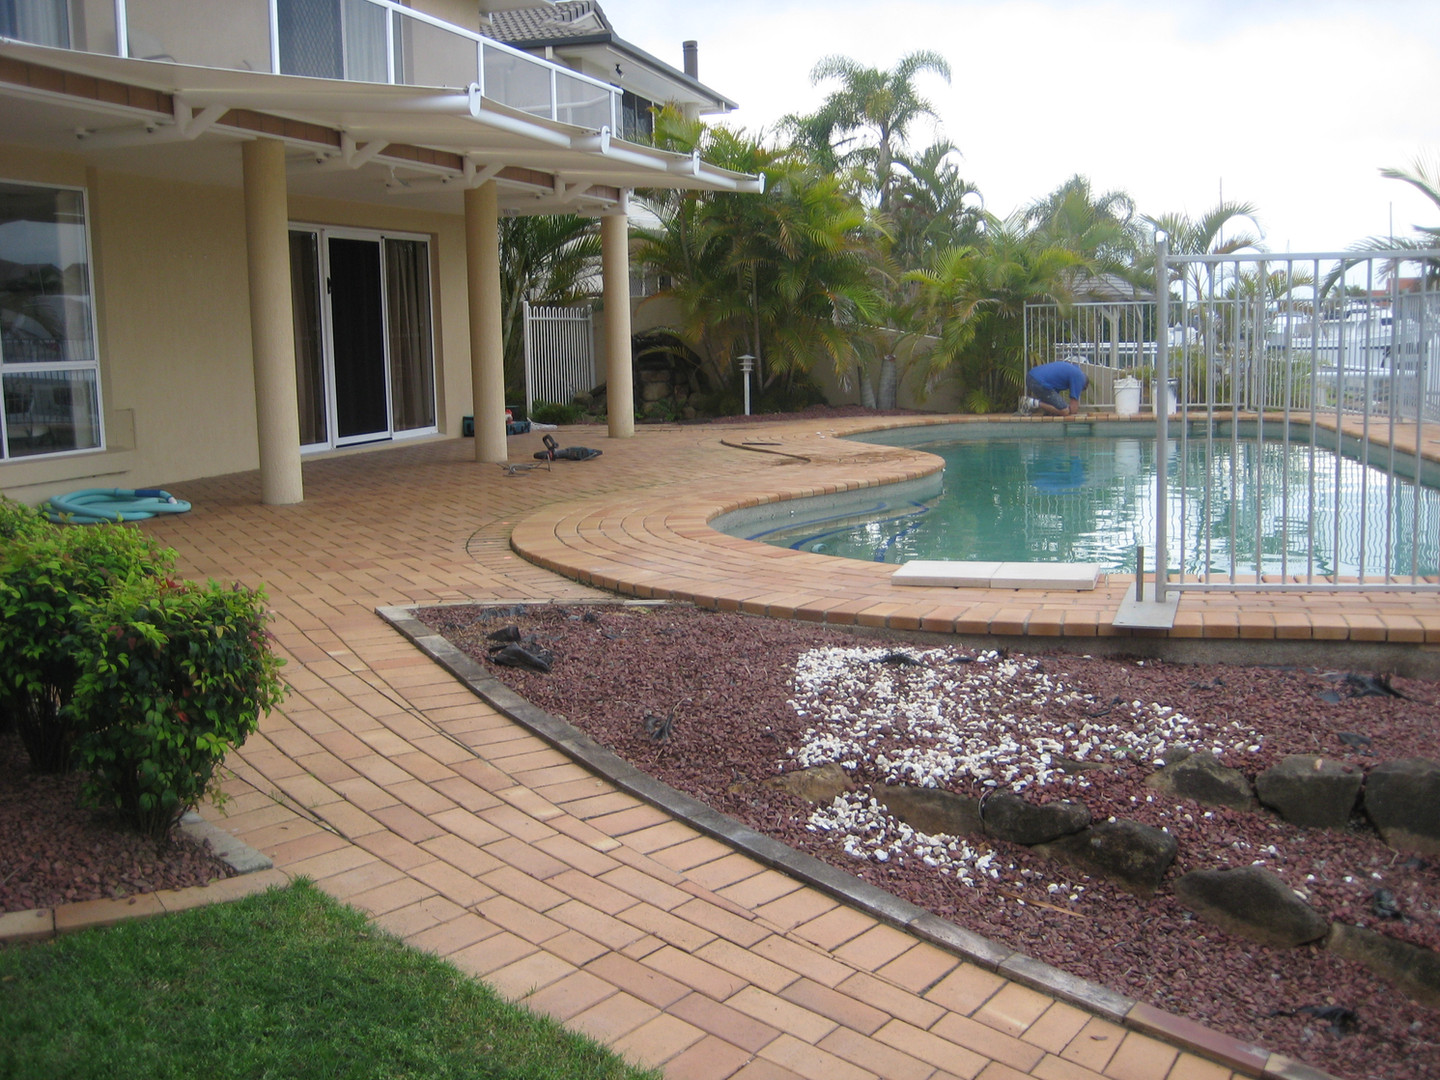 Raby Bay award winning pool before works